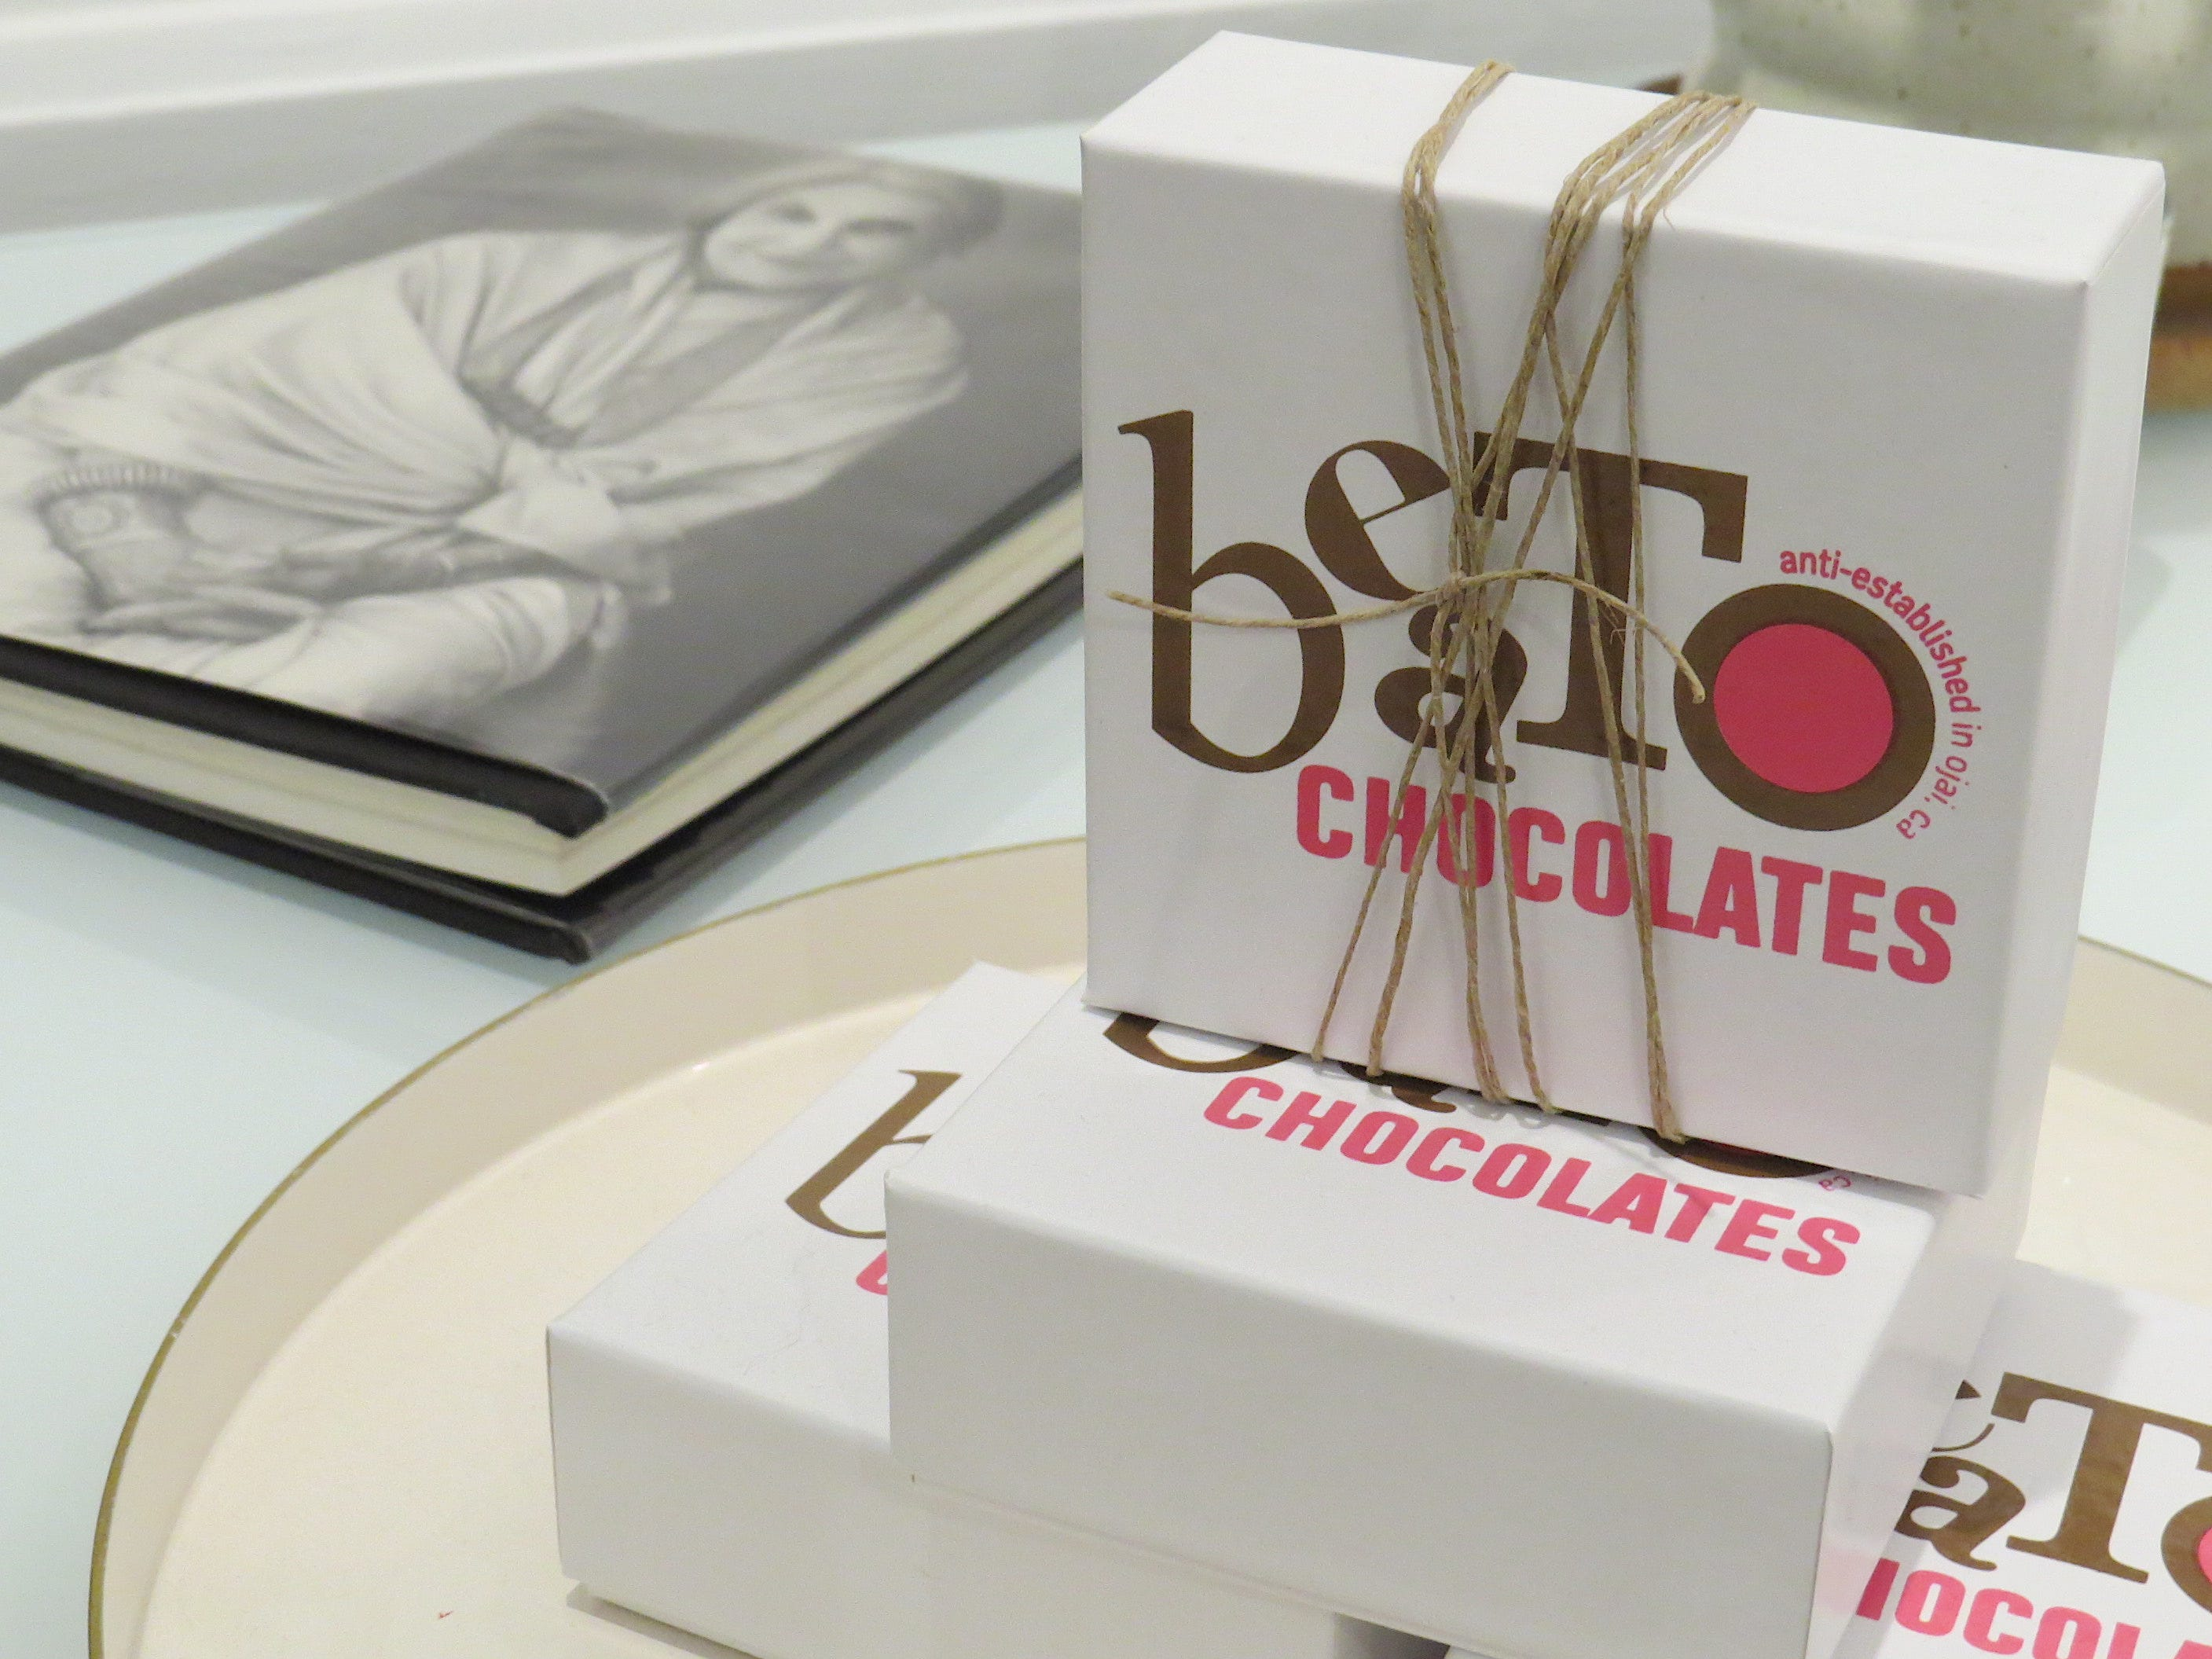 Open and shut: Beato Chocolates made, sold at Ojai art gallery